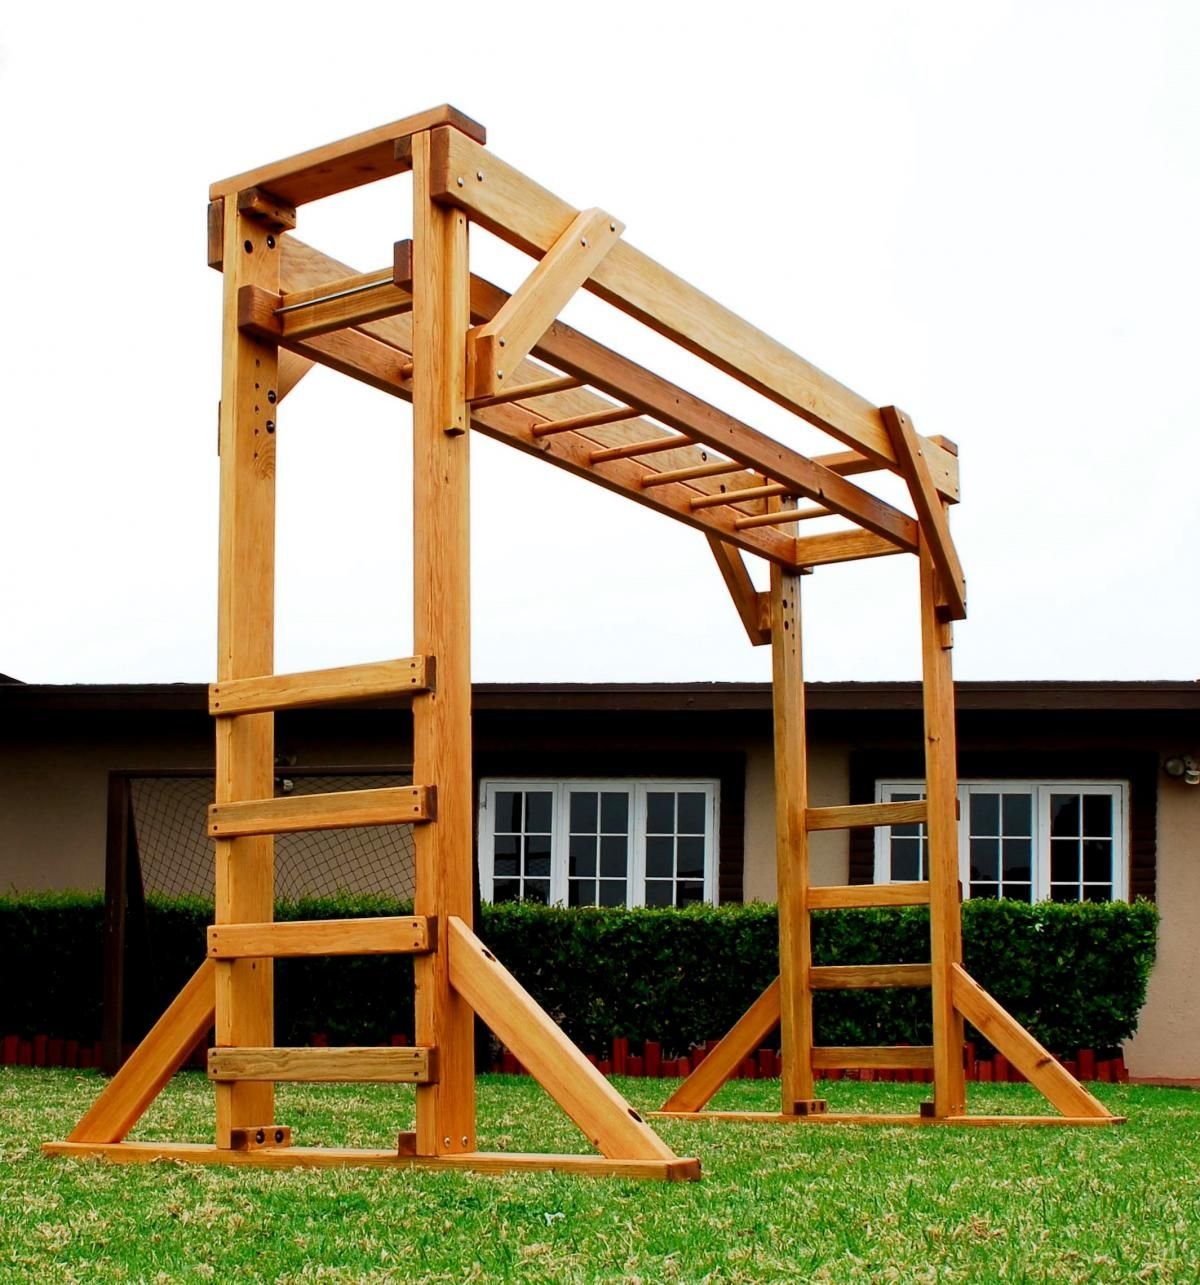 Monkey Bar Sheldon S Monkey Bar Options 7ft H 9ft L Douglas Fir 1